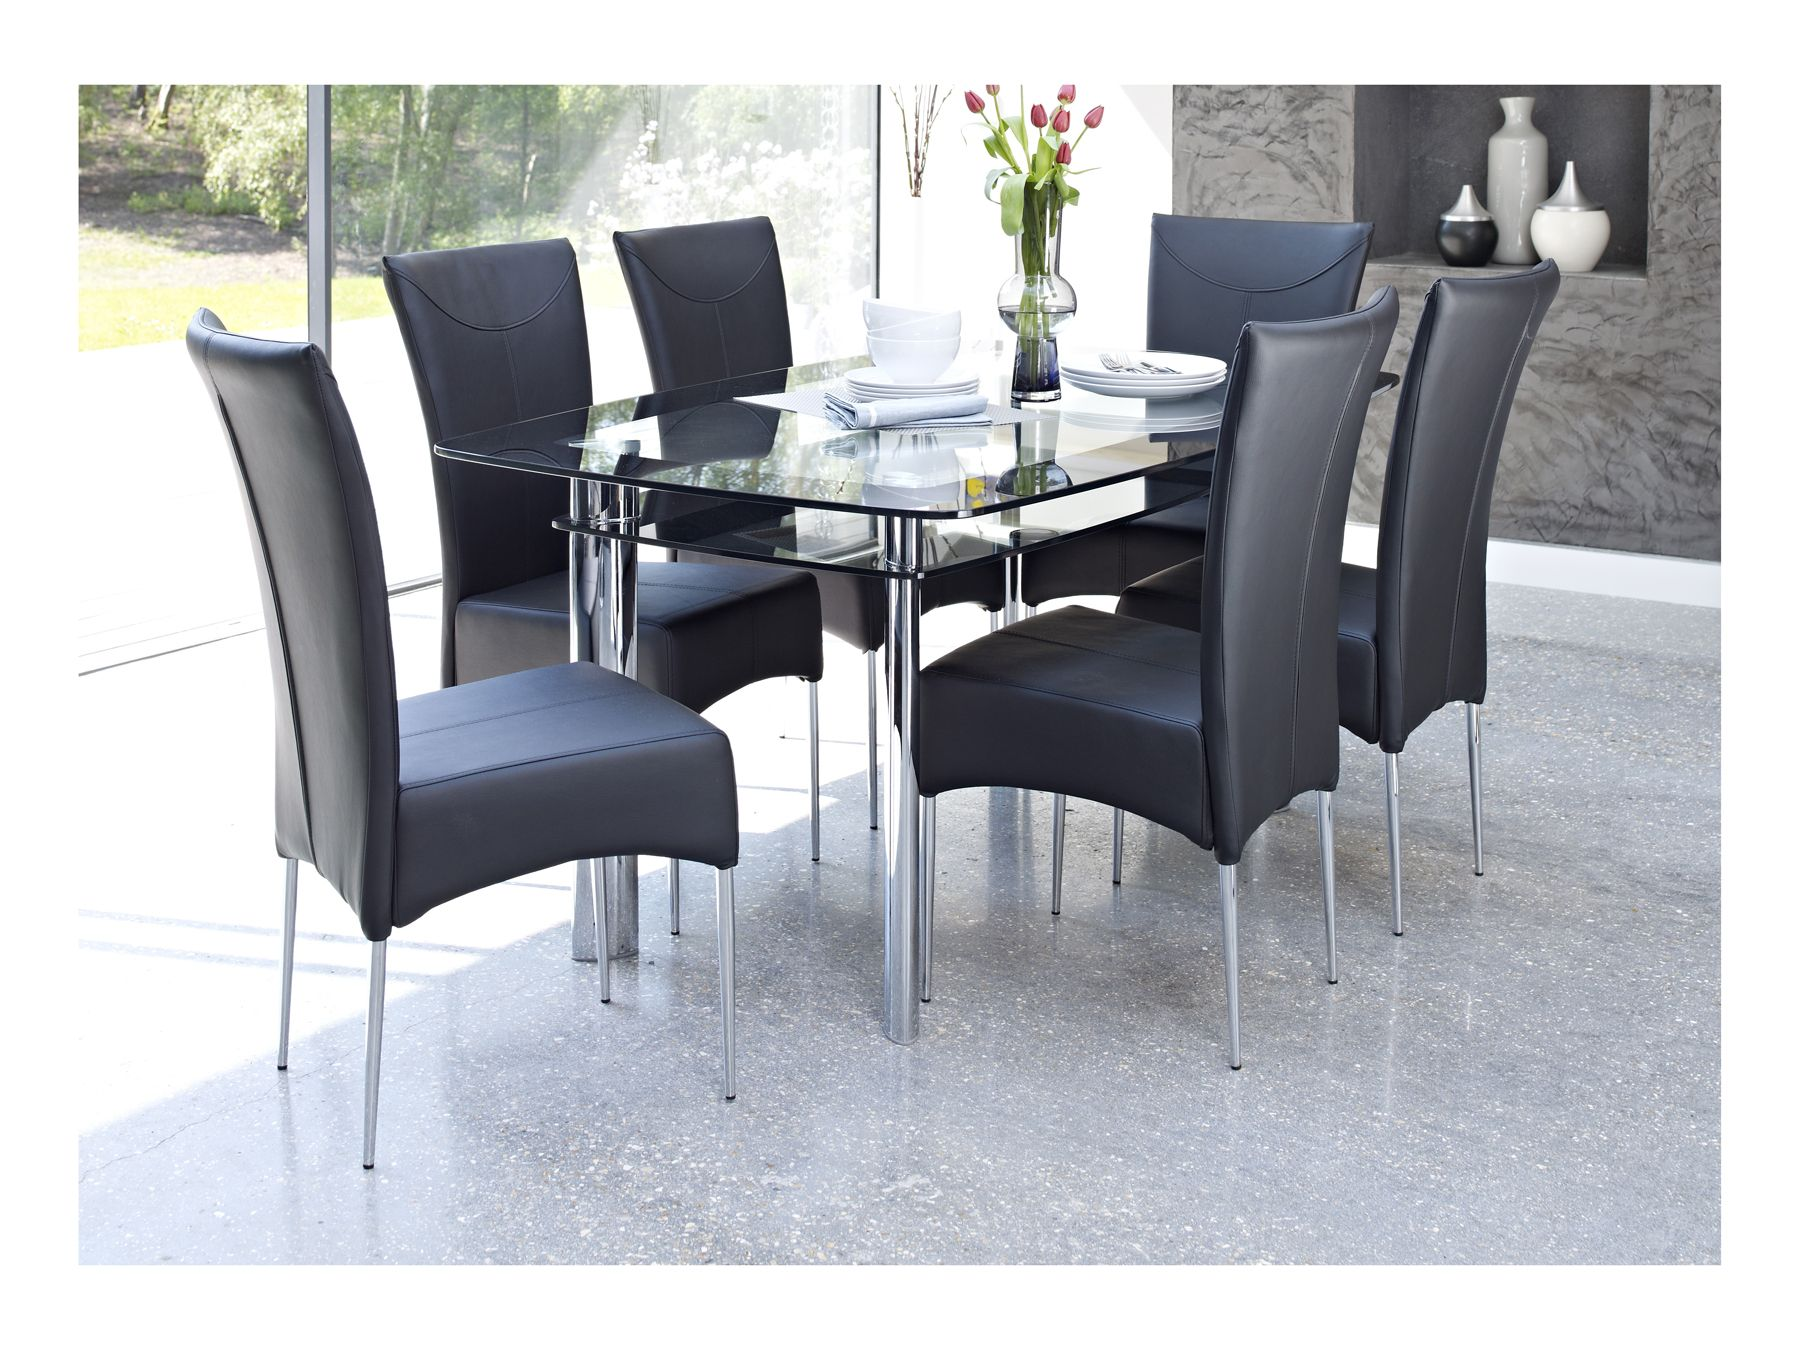 Glass dining table with black chairs whatever for Dining room table 2